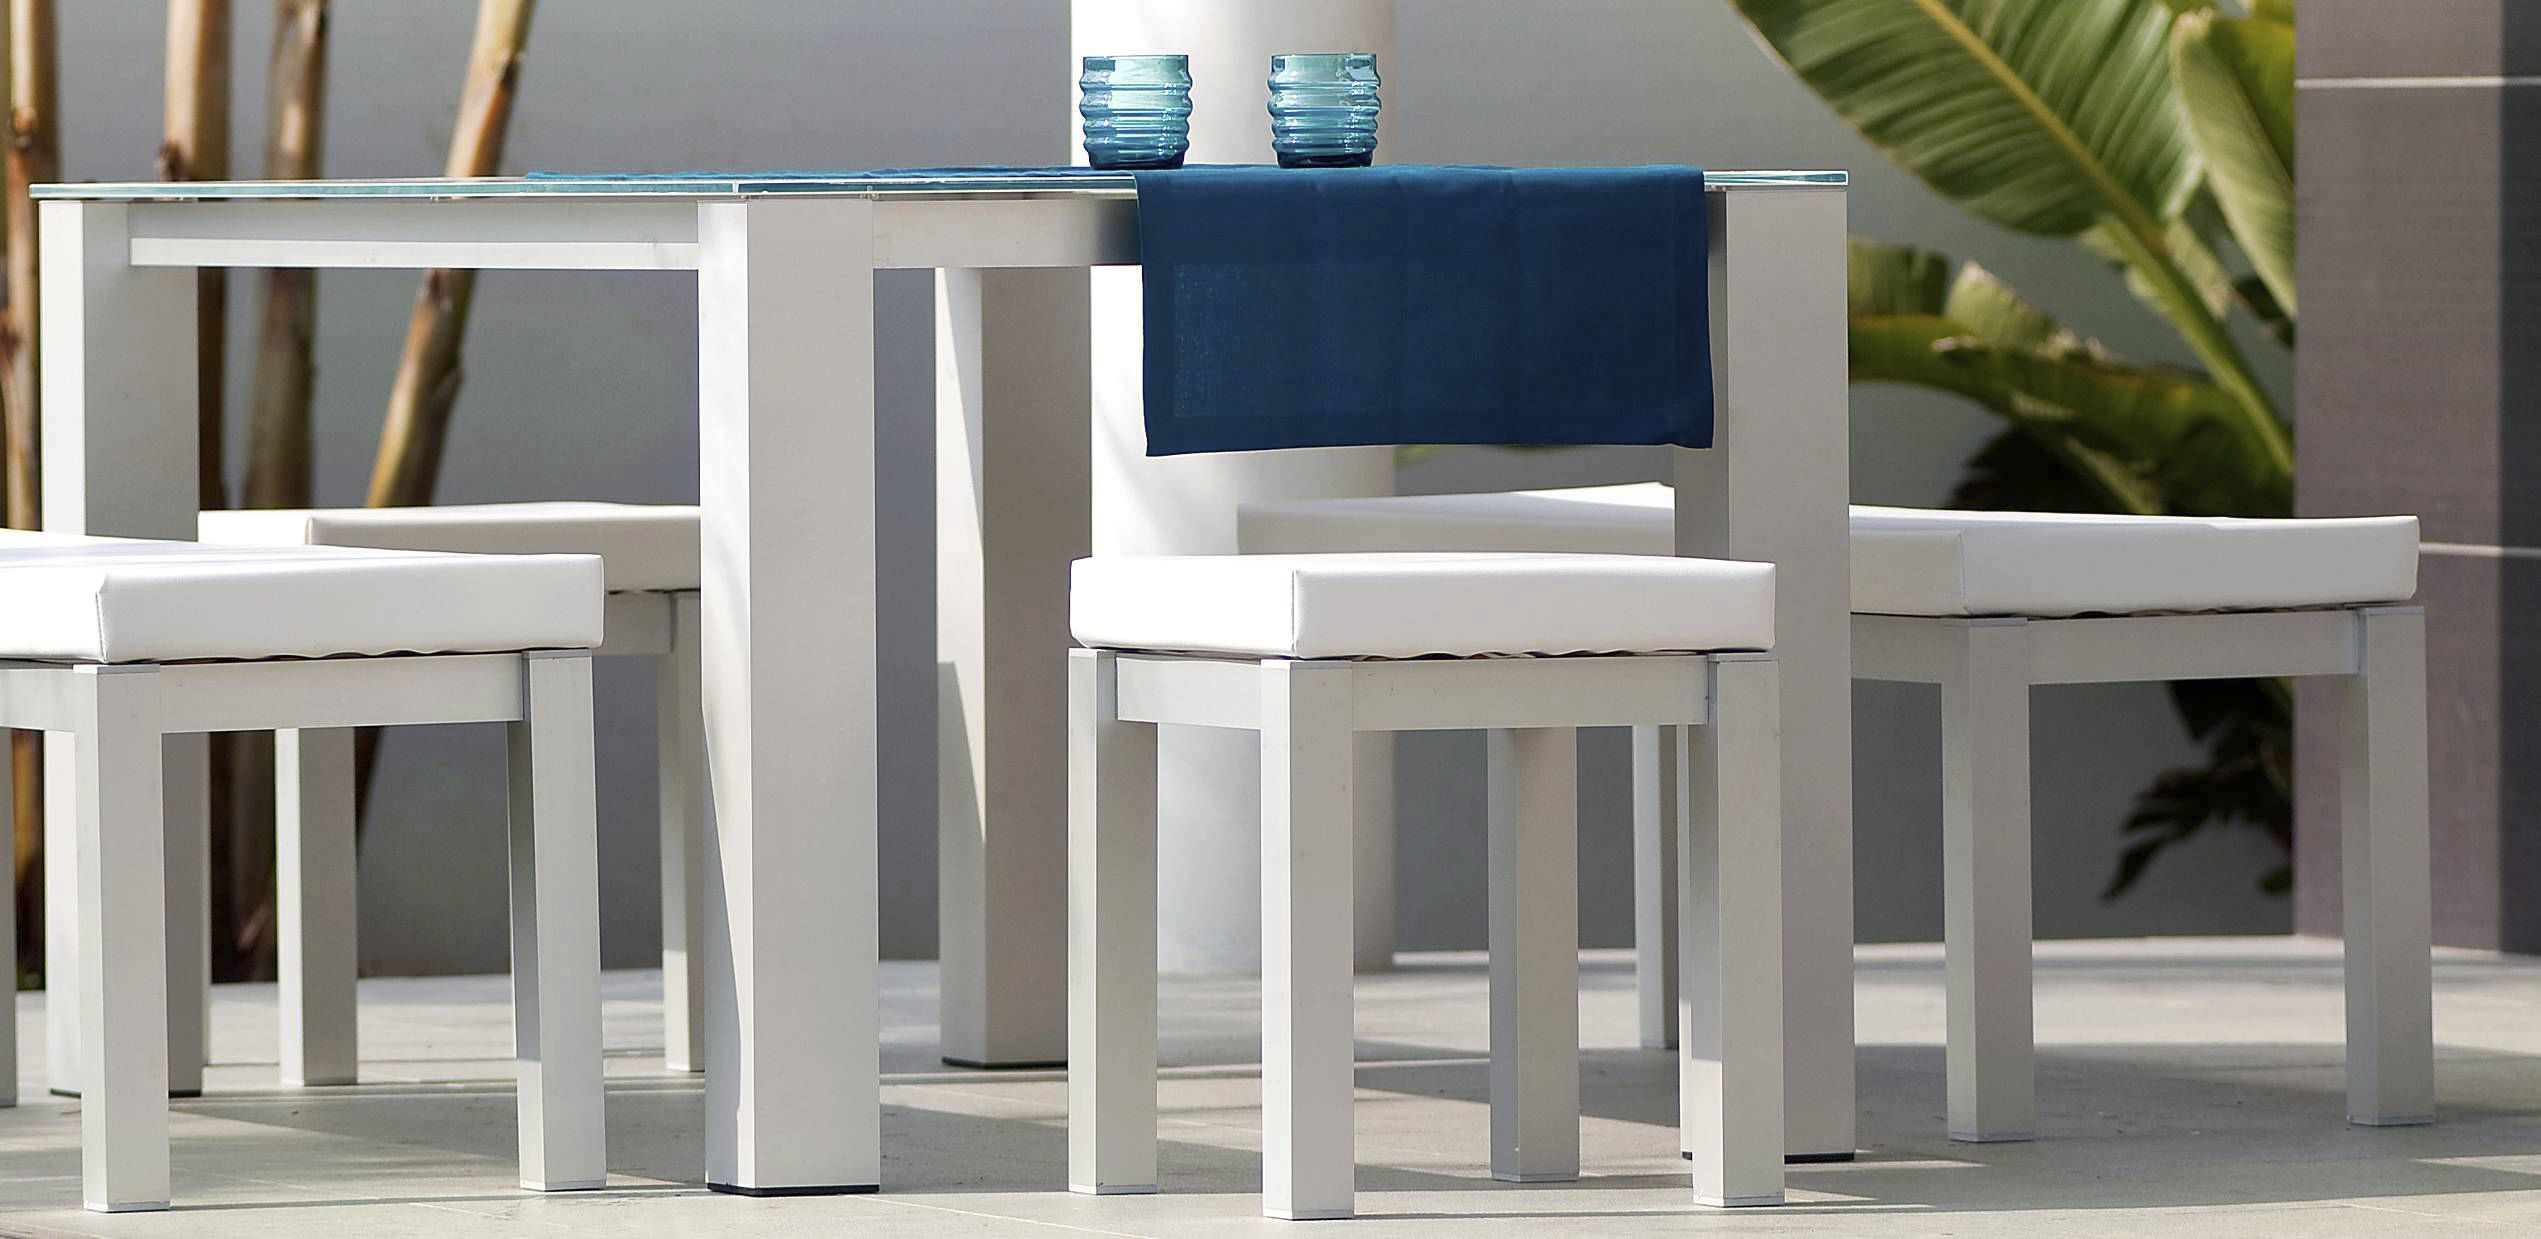 Muebles Tadel Grup - Contemporary Table Wooden Rectangular Garden Laguna Blue [mjhdah]http://img.archiexpo.com/images_ae/photo-g/54536-5594993.jpg